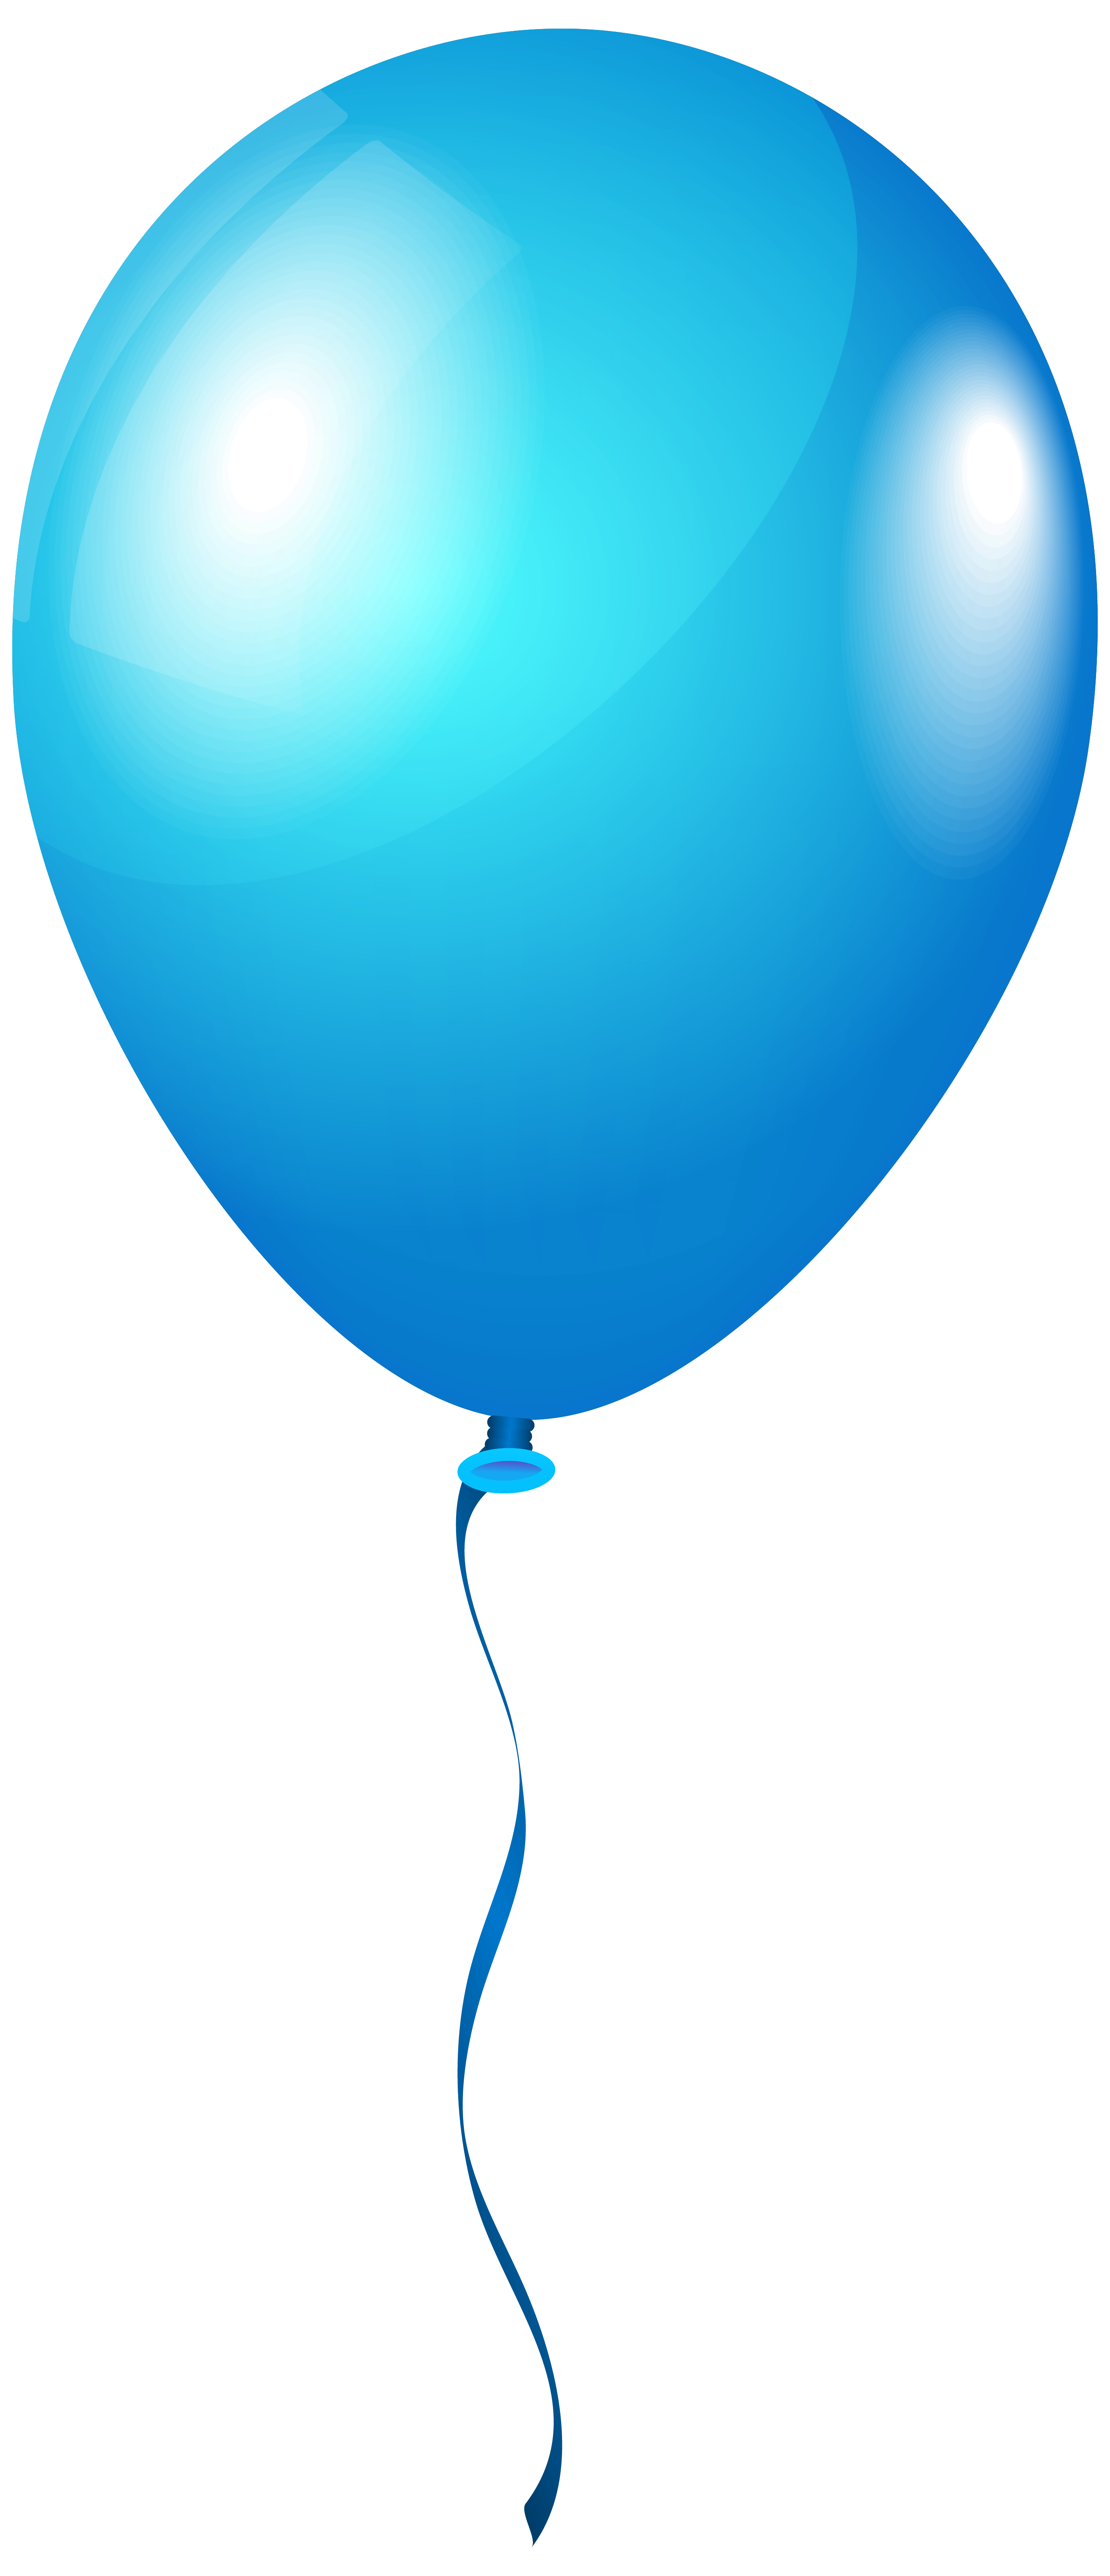 Single BlueBalloon PNG Clipart Image.